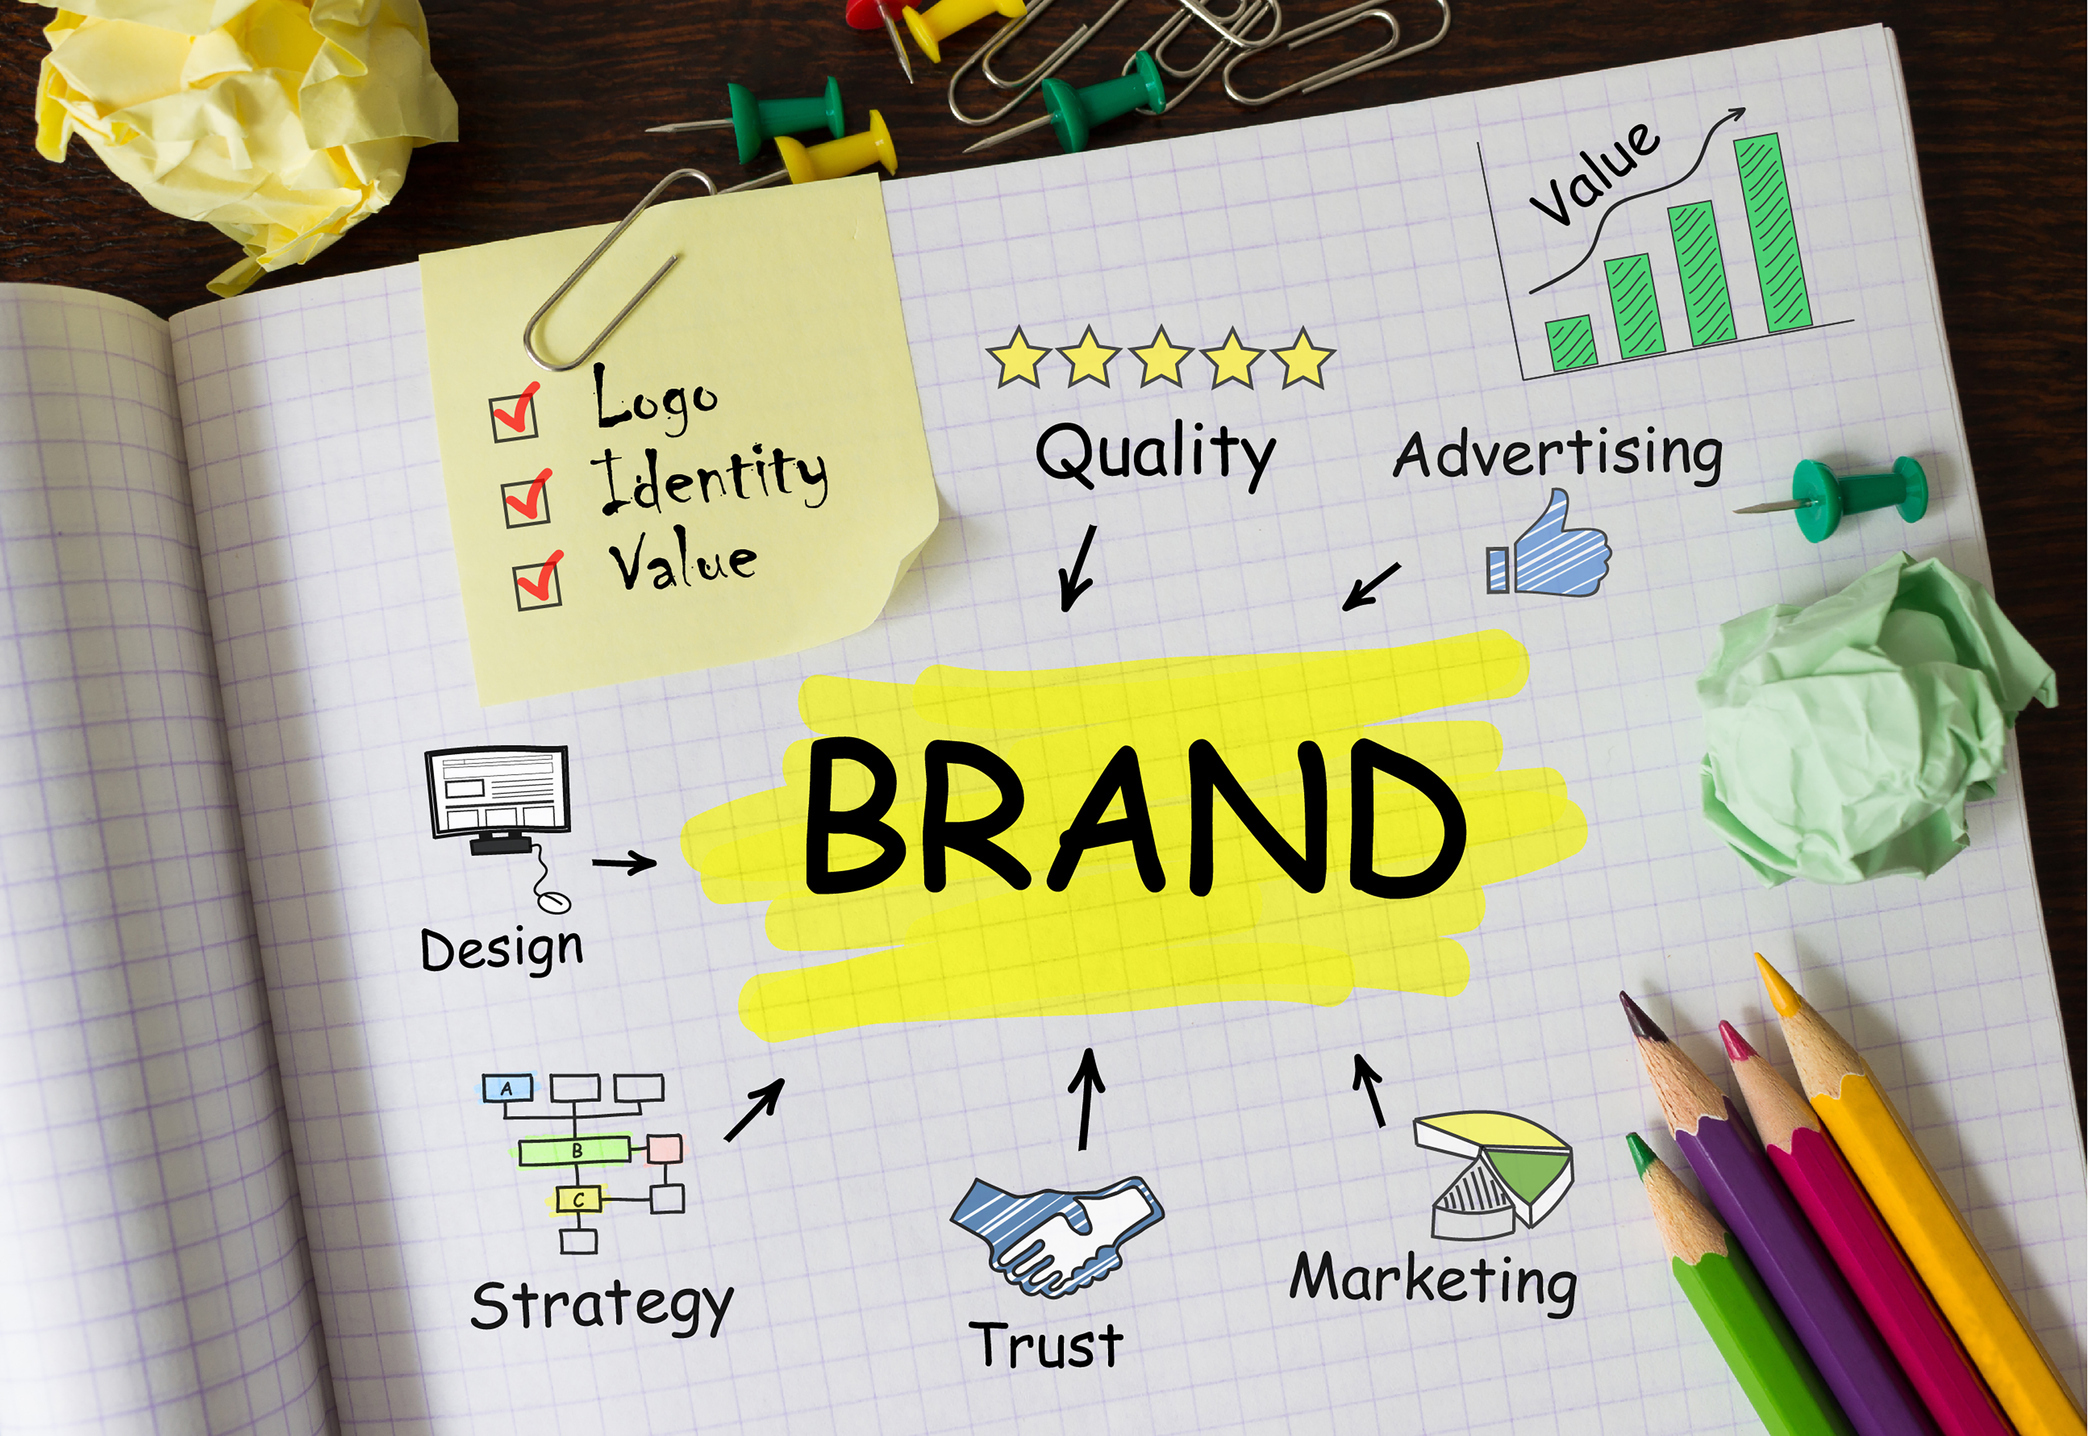 Elements of Building a Strong Brand